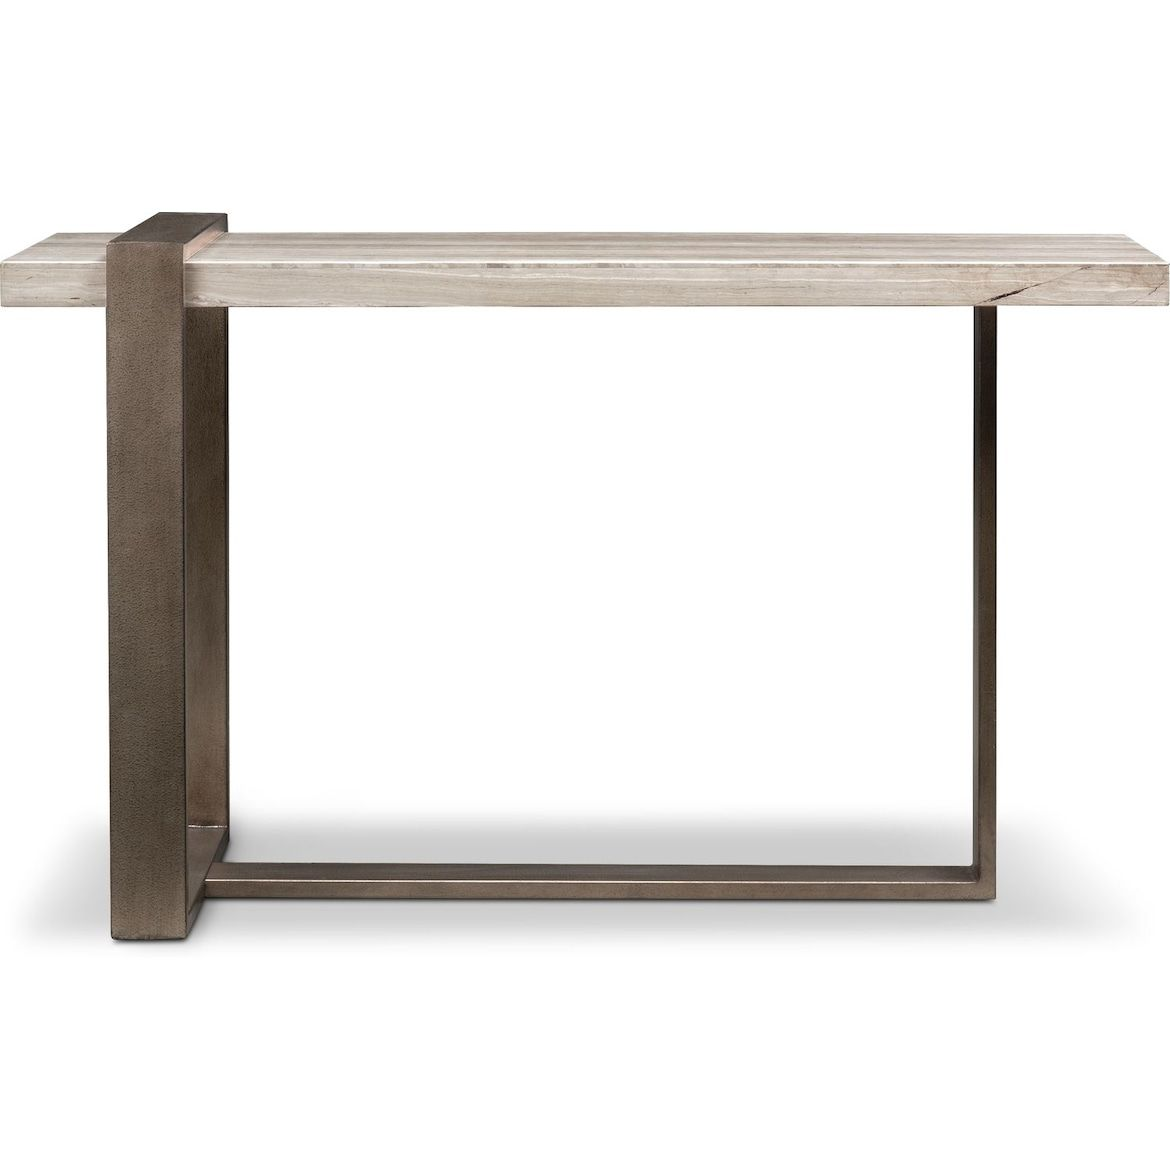 Celadon Marble Sofa Table In 2020 Sofa Table Marble End Tables Reclining Furniture